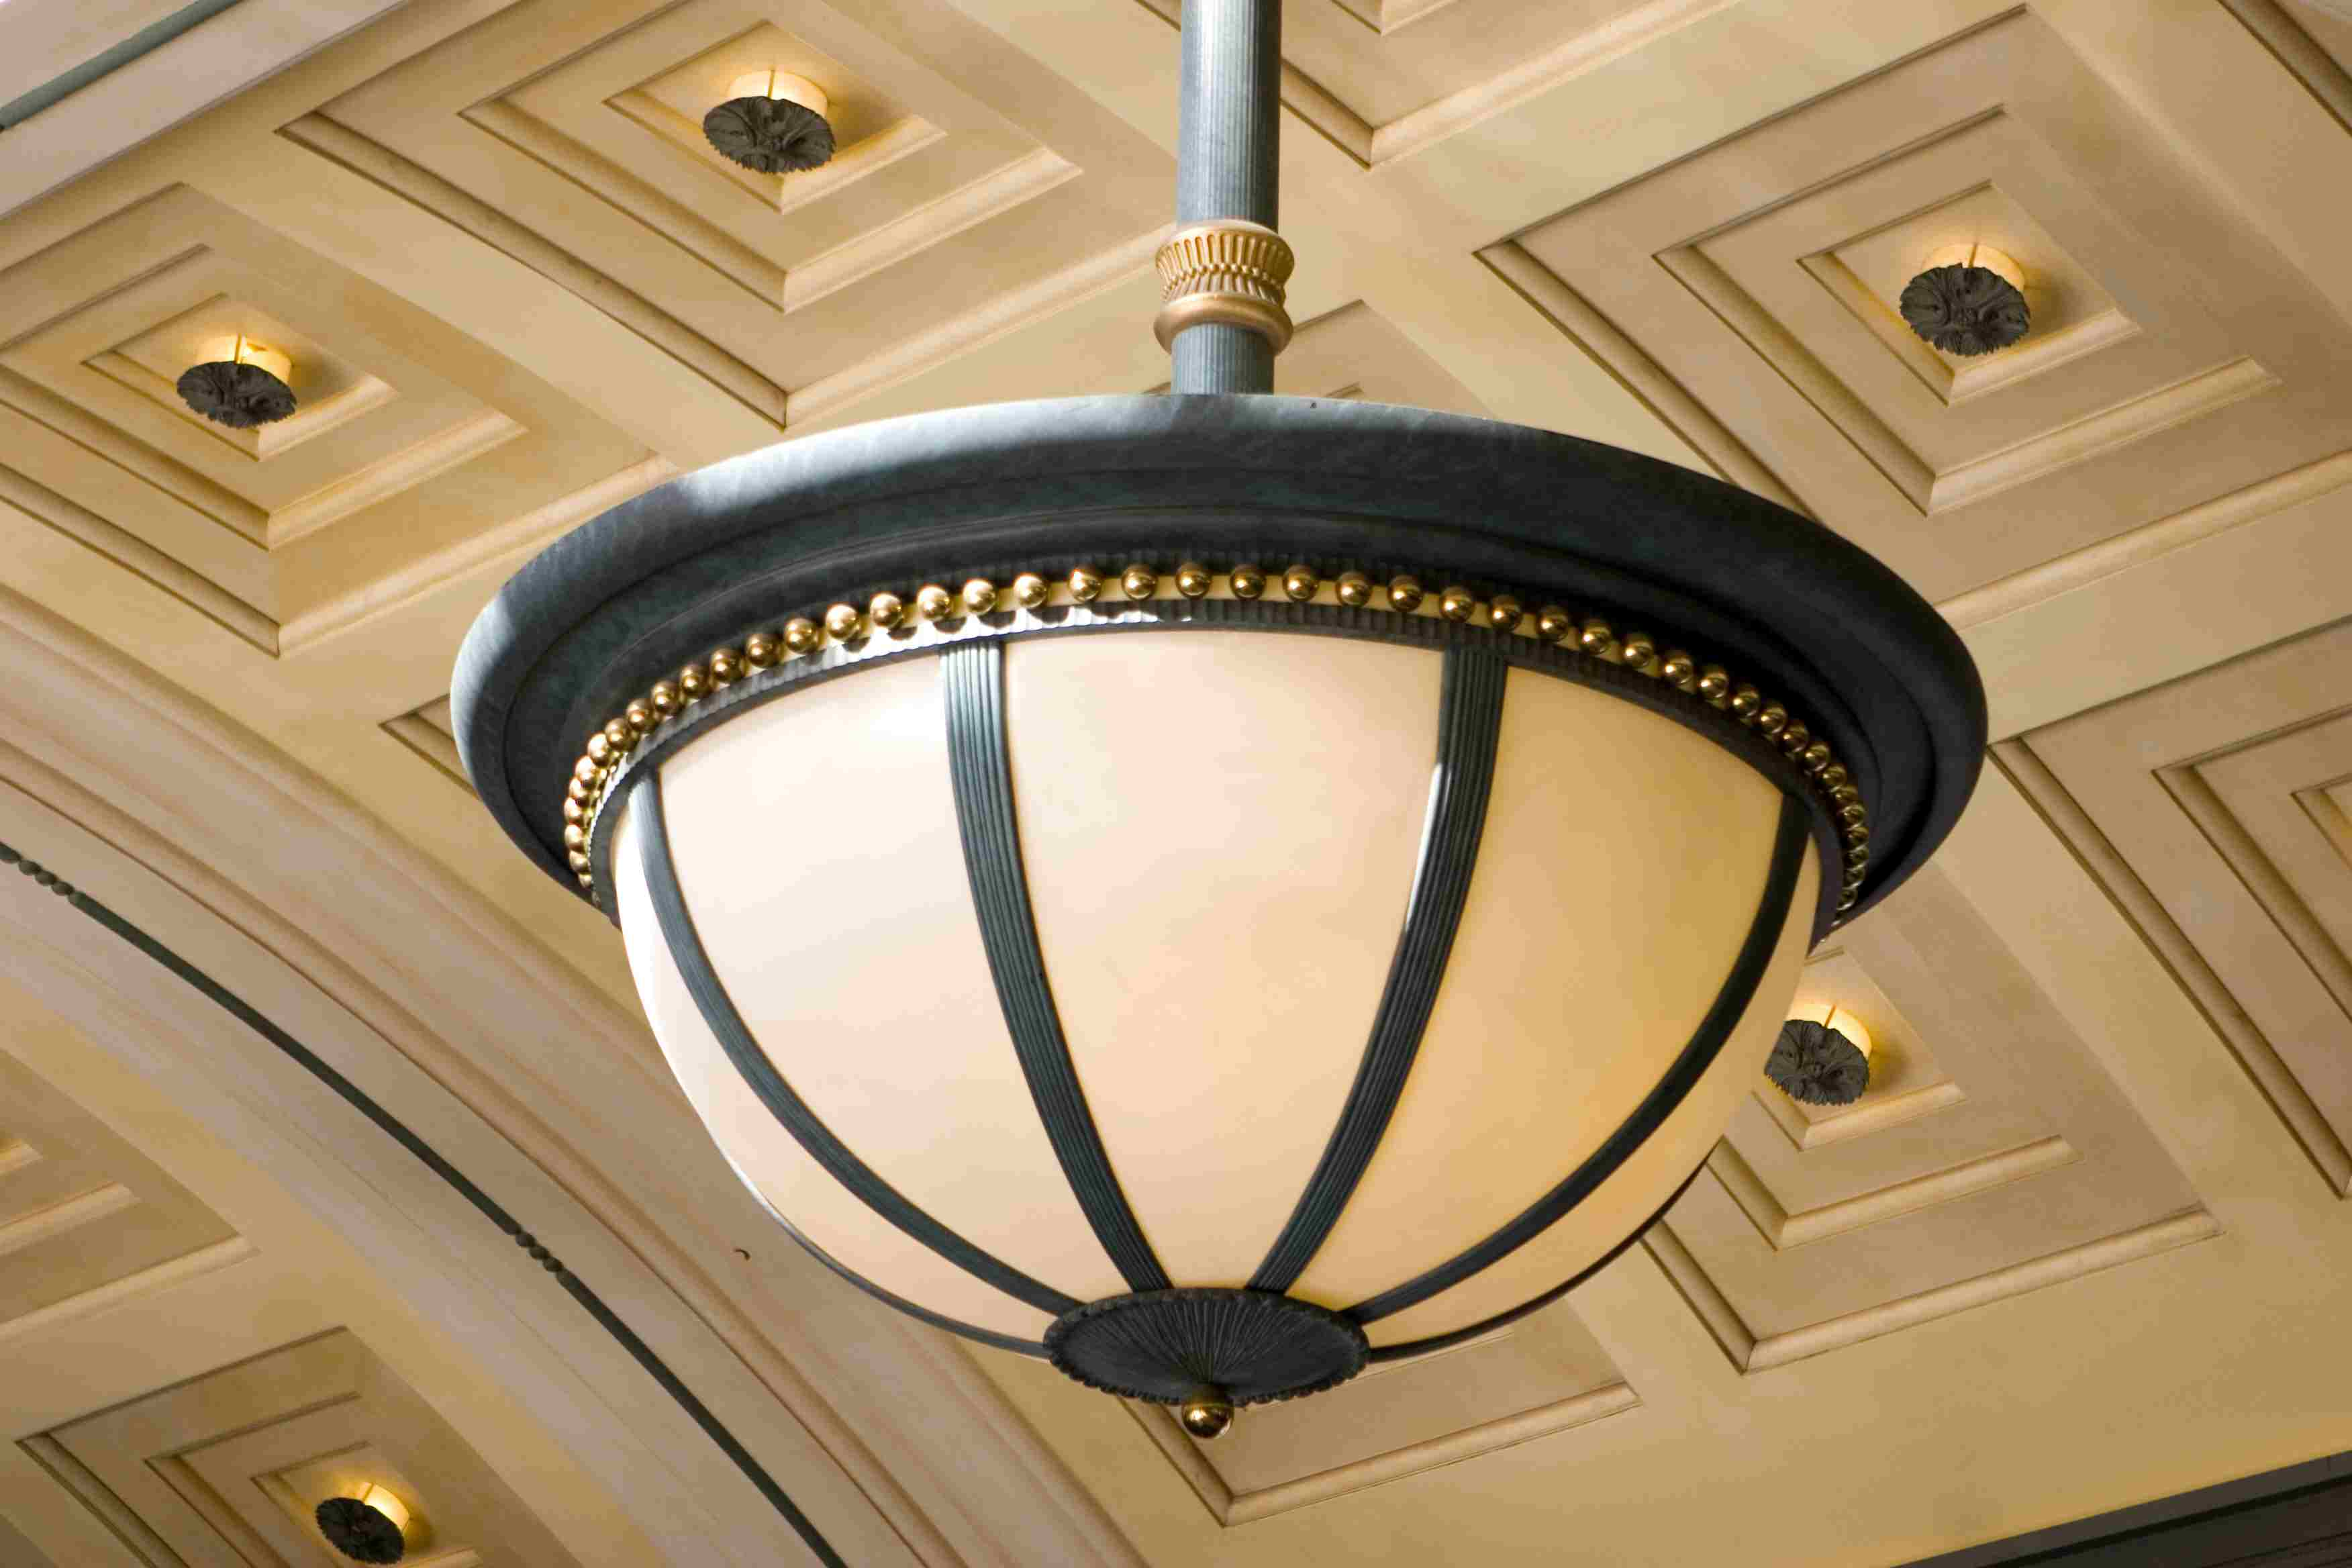 A light fixture hanging from the ceiling.